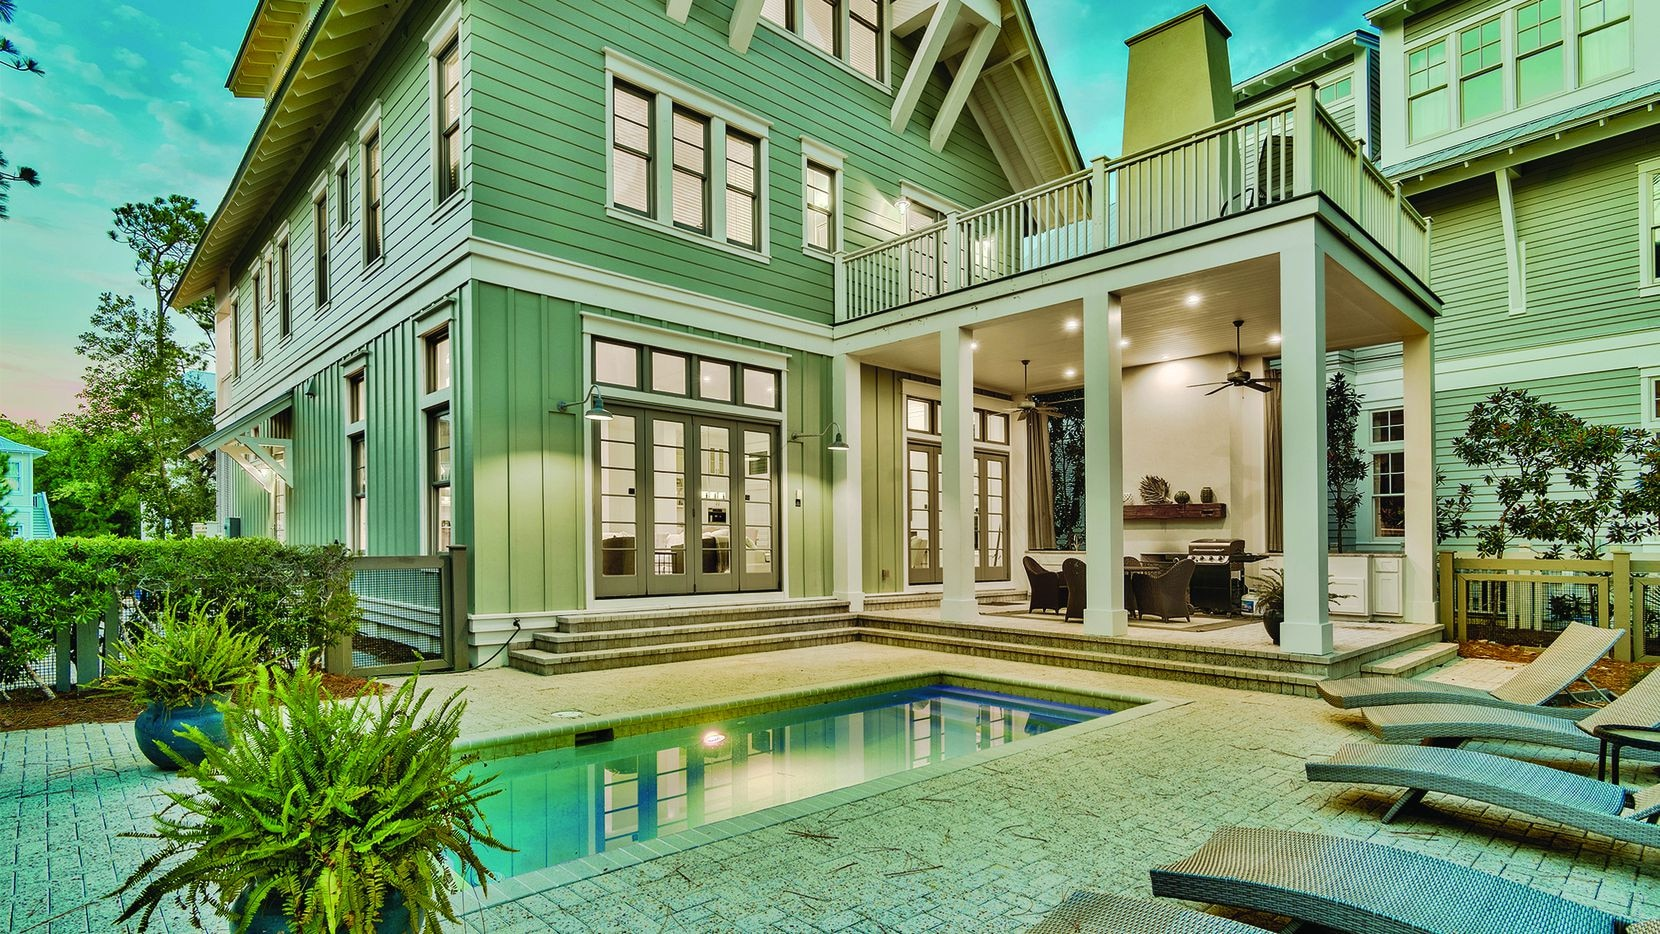 The seven-bedroom coastal estate at 93 Vermilion Way in Watercolor, Florida, will sell at auction at noon on Nov. 19 by Luxury Estates Auction Company.